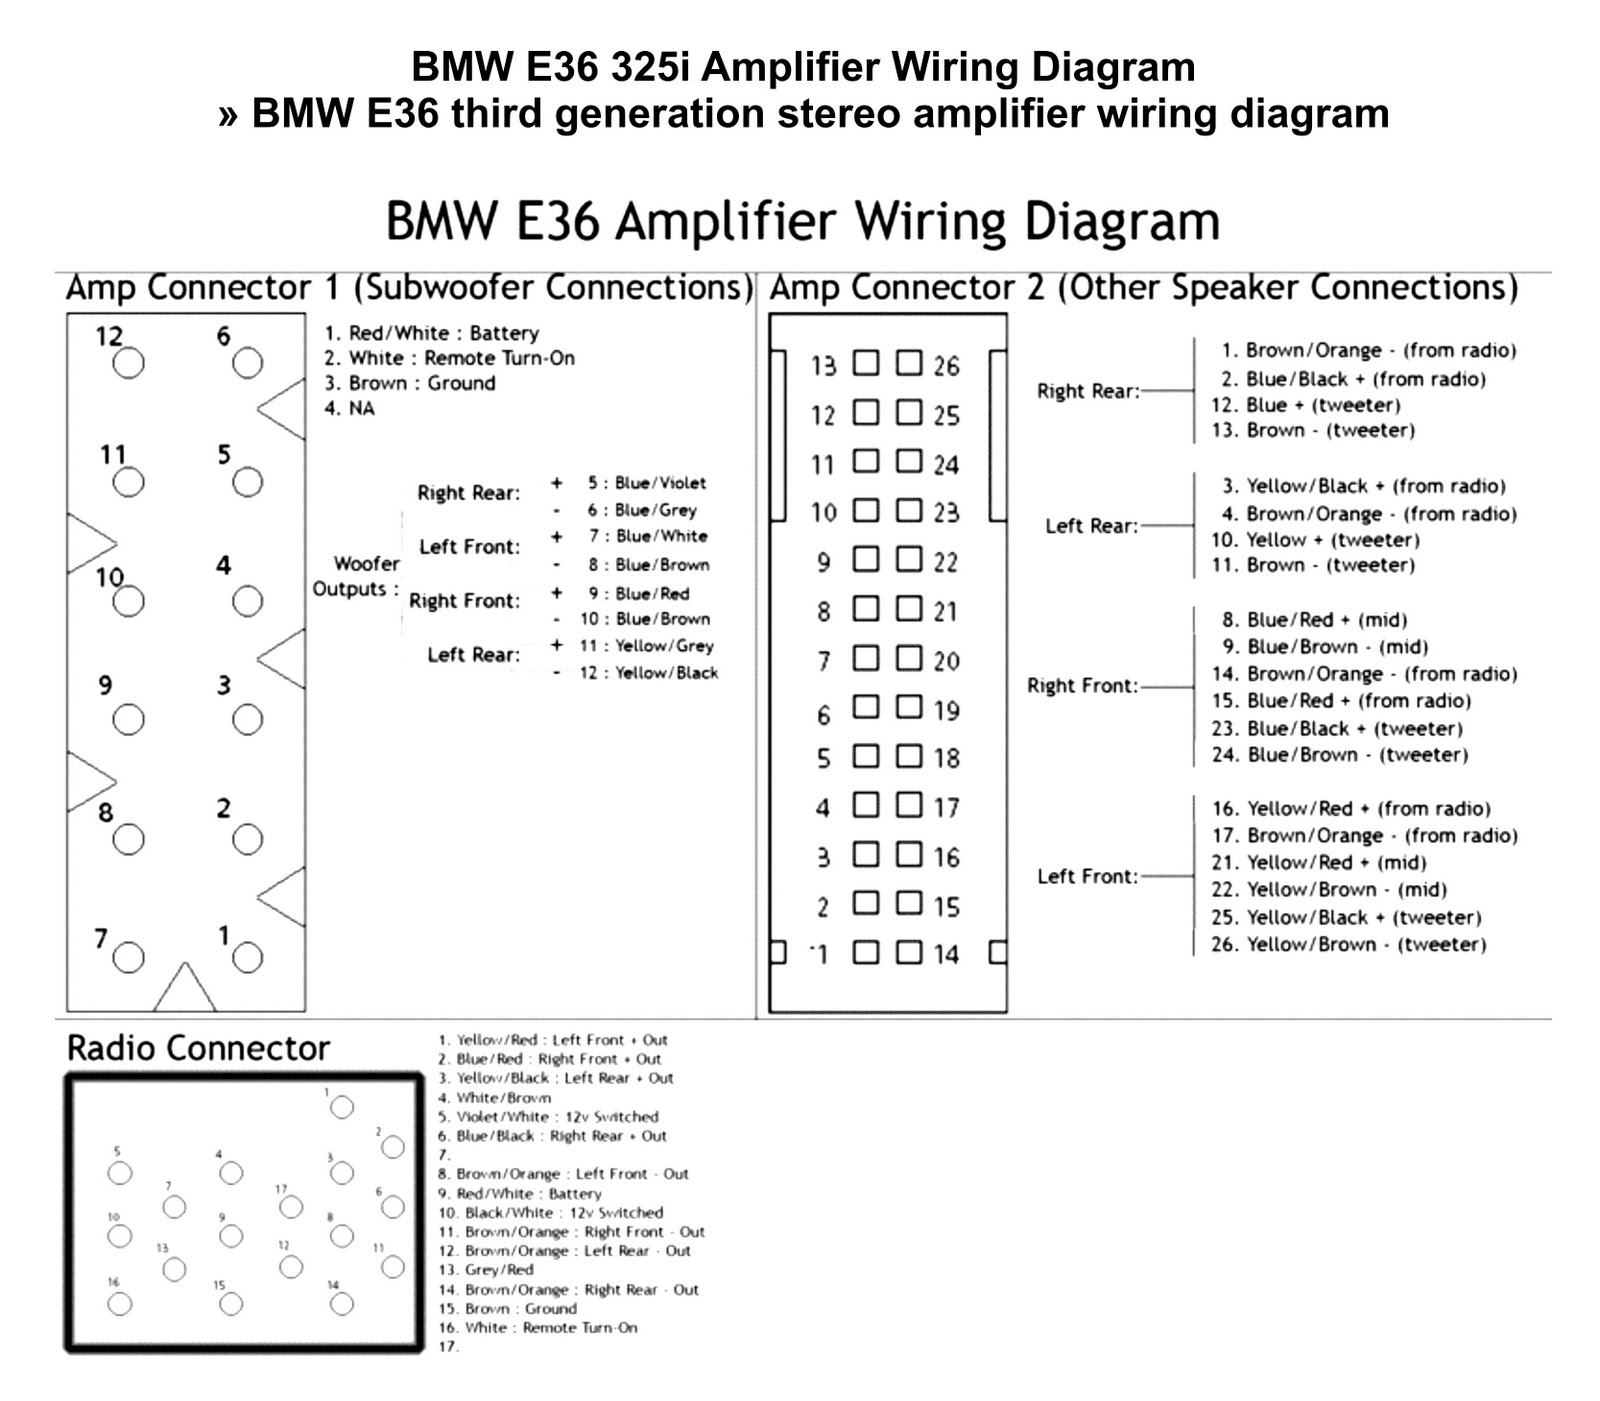 e39 amplifier wiring diagram similiar bmw 330i wiring diagram keywords bmw 2002 engine diagram under the hood furthermore bmw 7